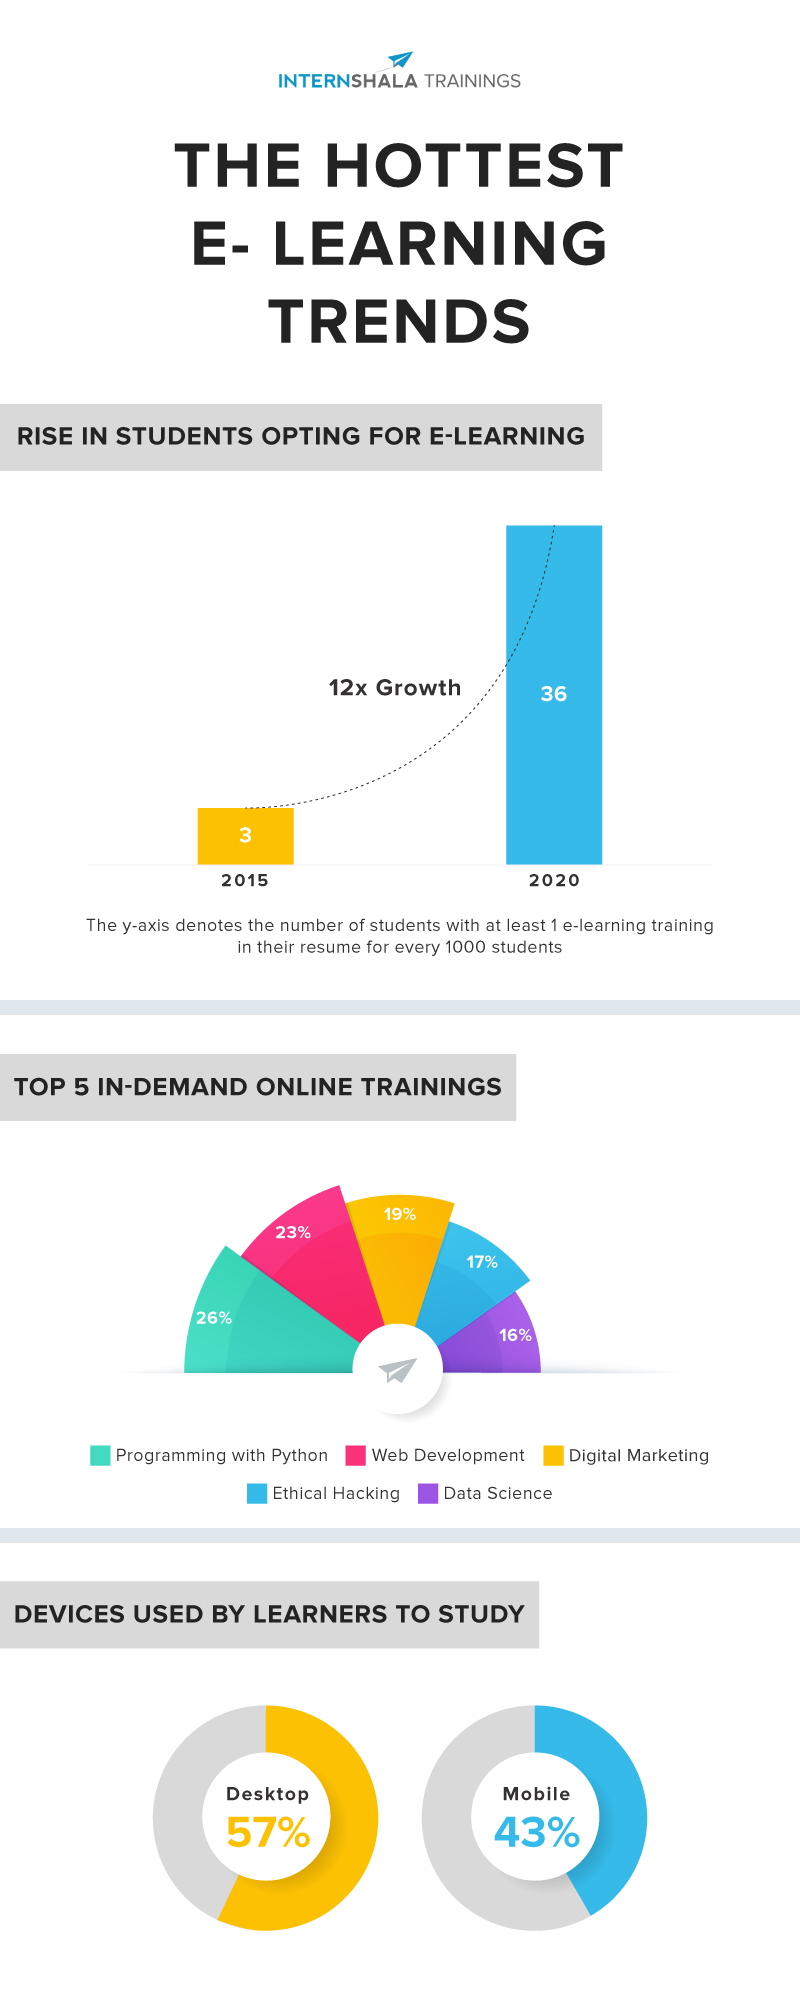 Most popular e-learning trends